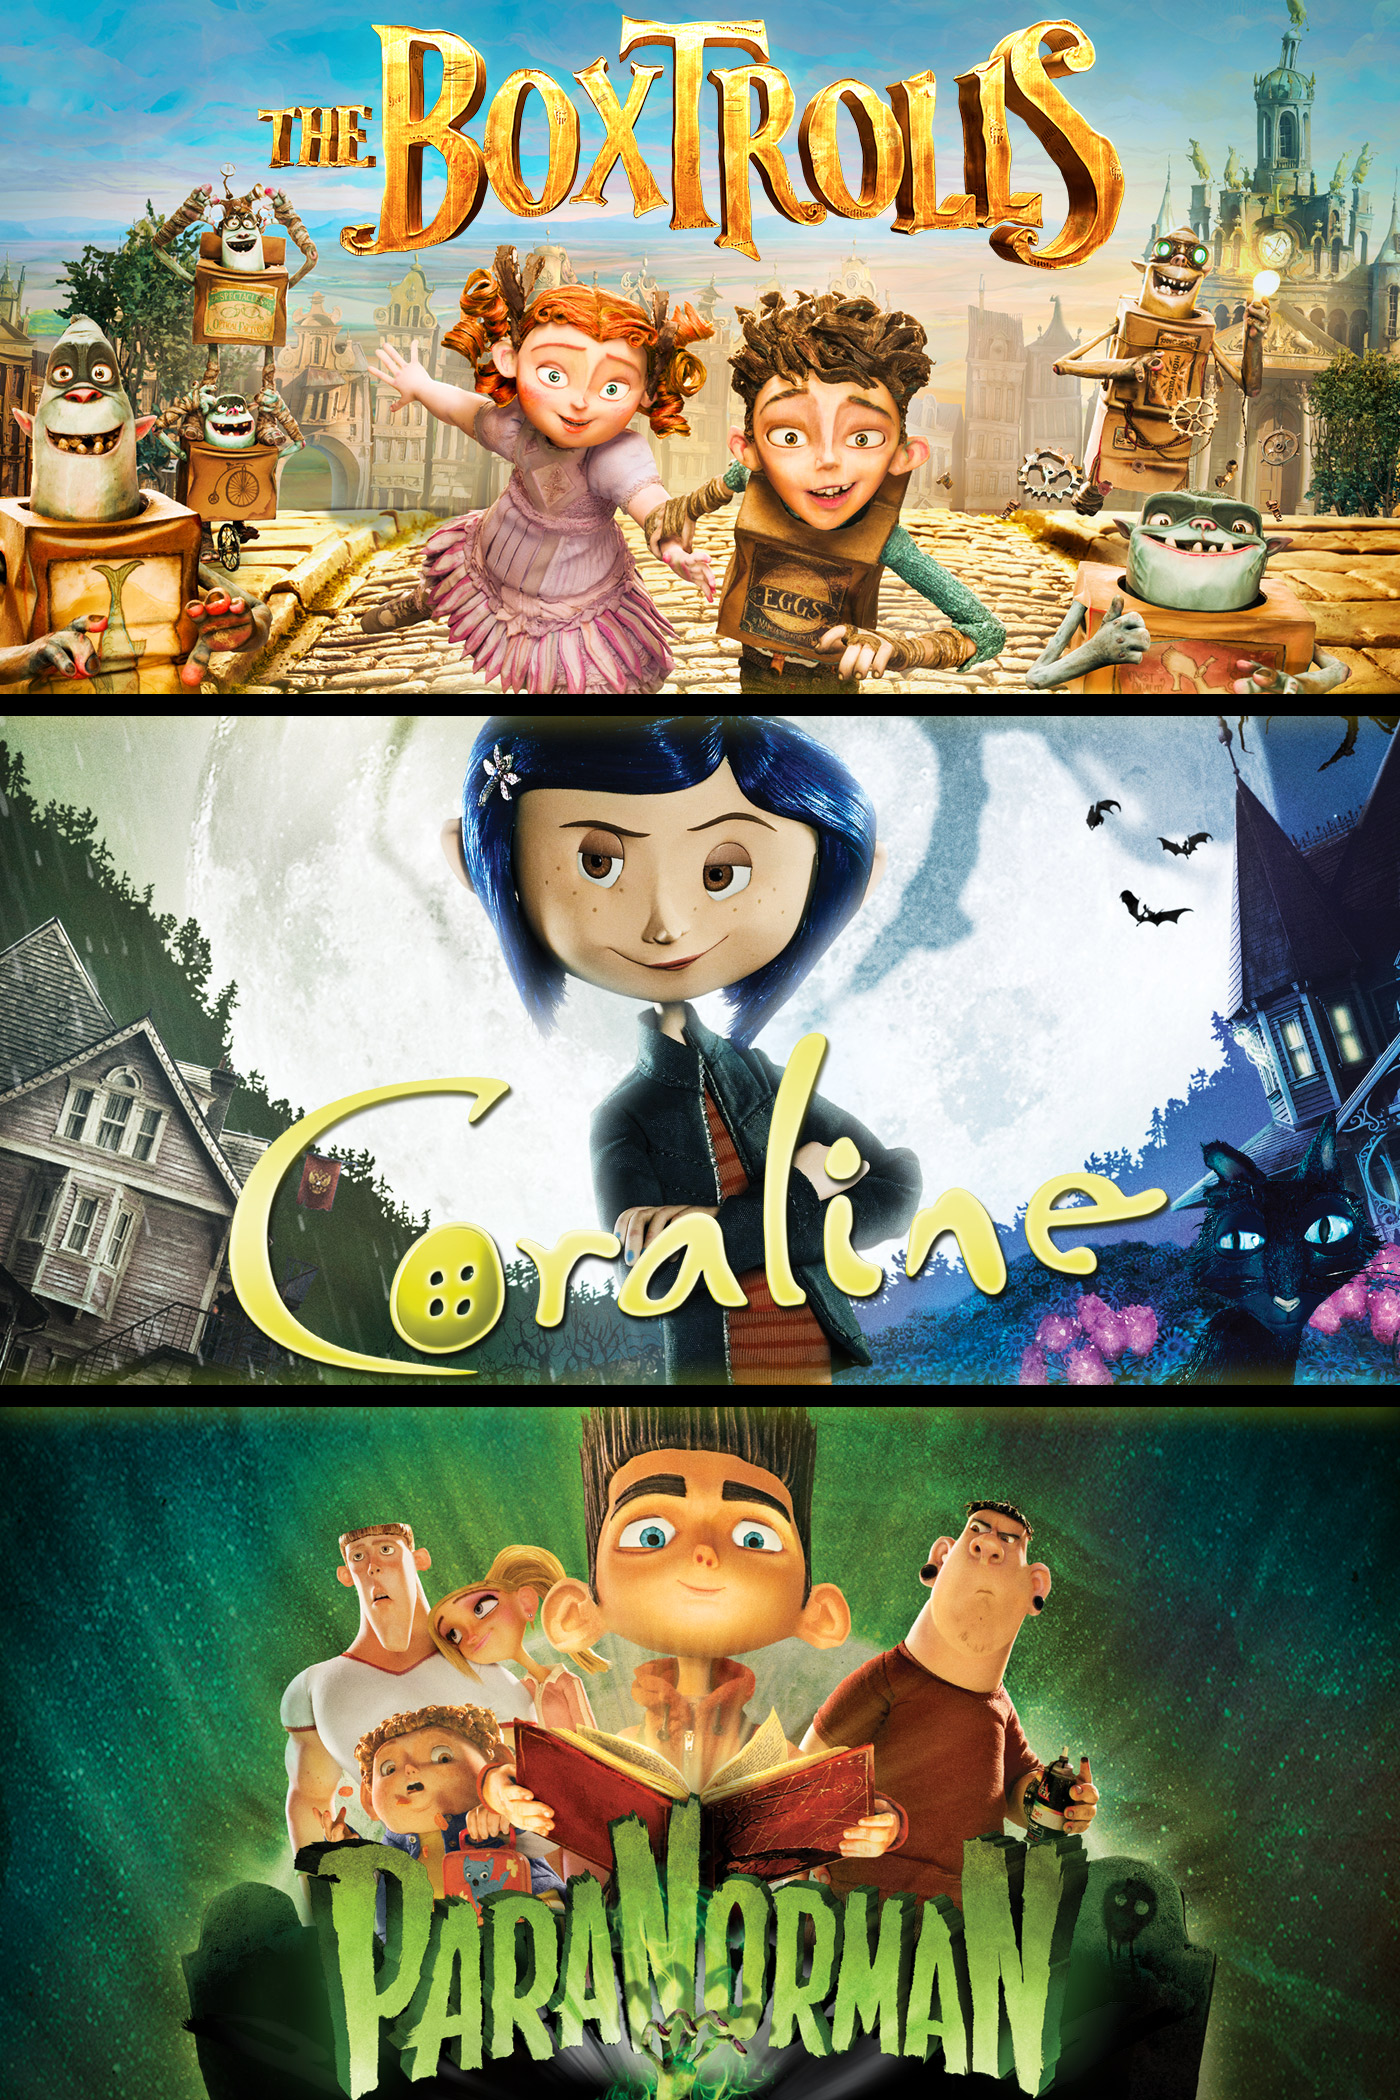 The Boxtrolls / ParaNorman / Coraline Triple Feature